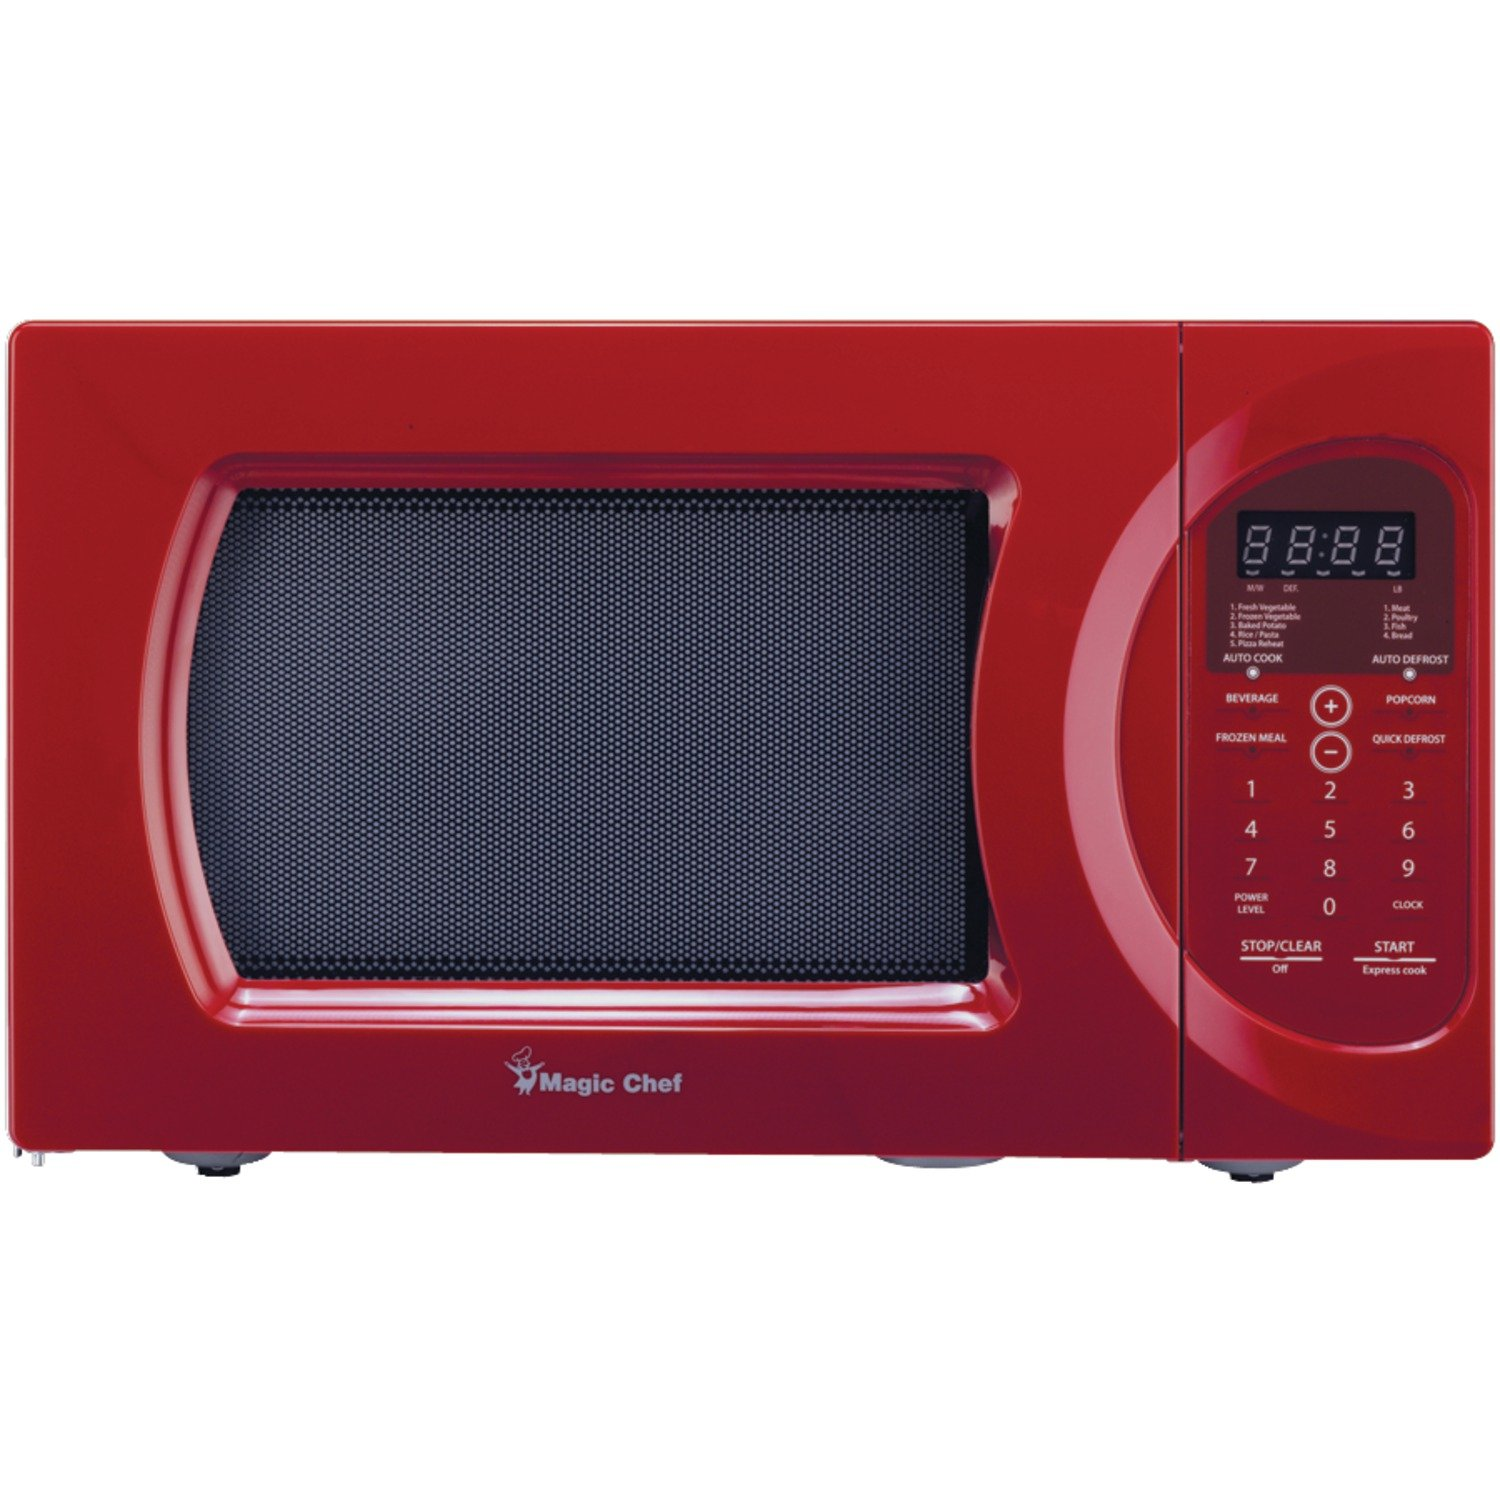 Red Microwave Ovens Magic Chef MCD992R Compact Oven Main View